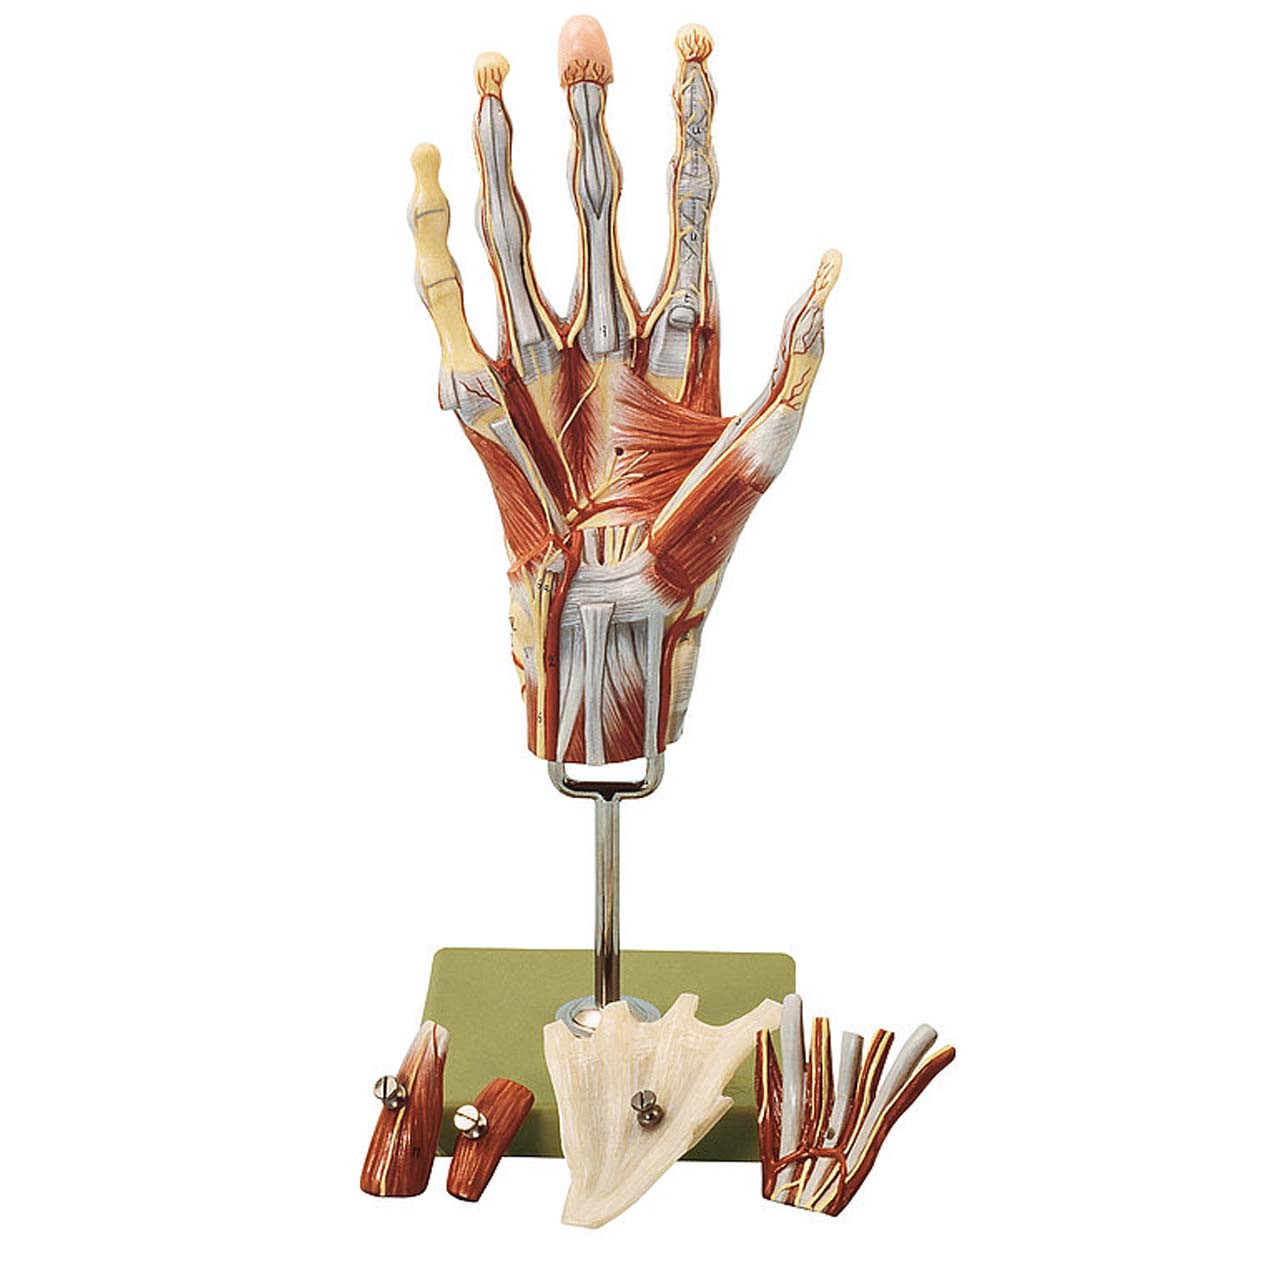 NS13 - Muscles of the Hand with Base of Fore-Arm